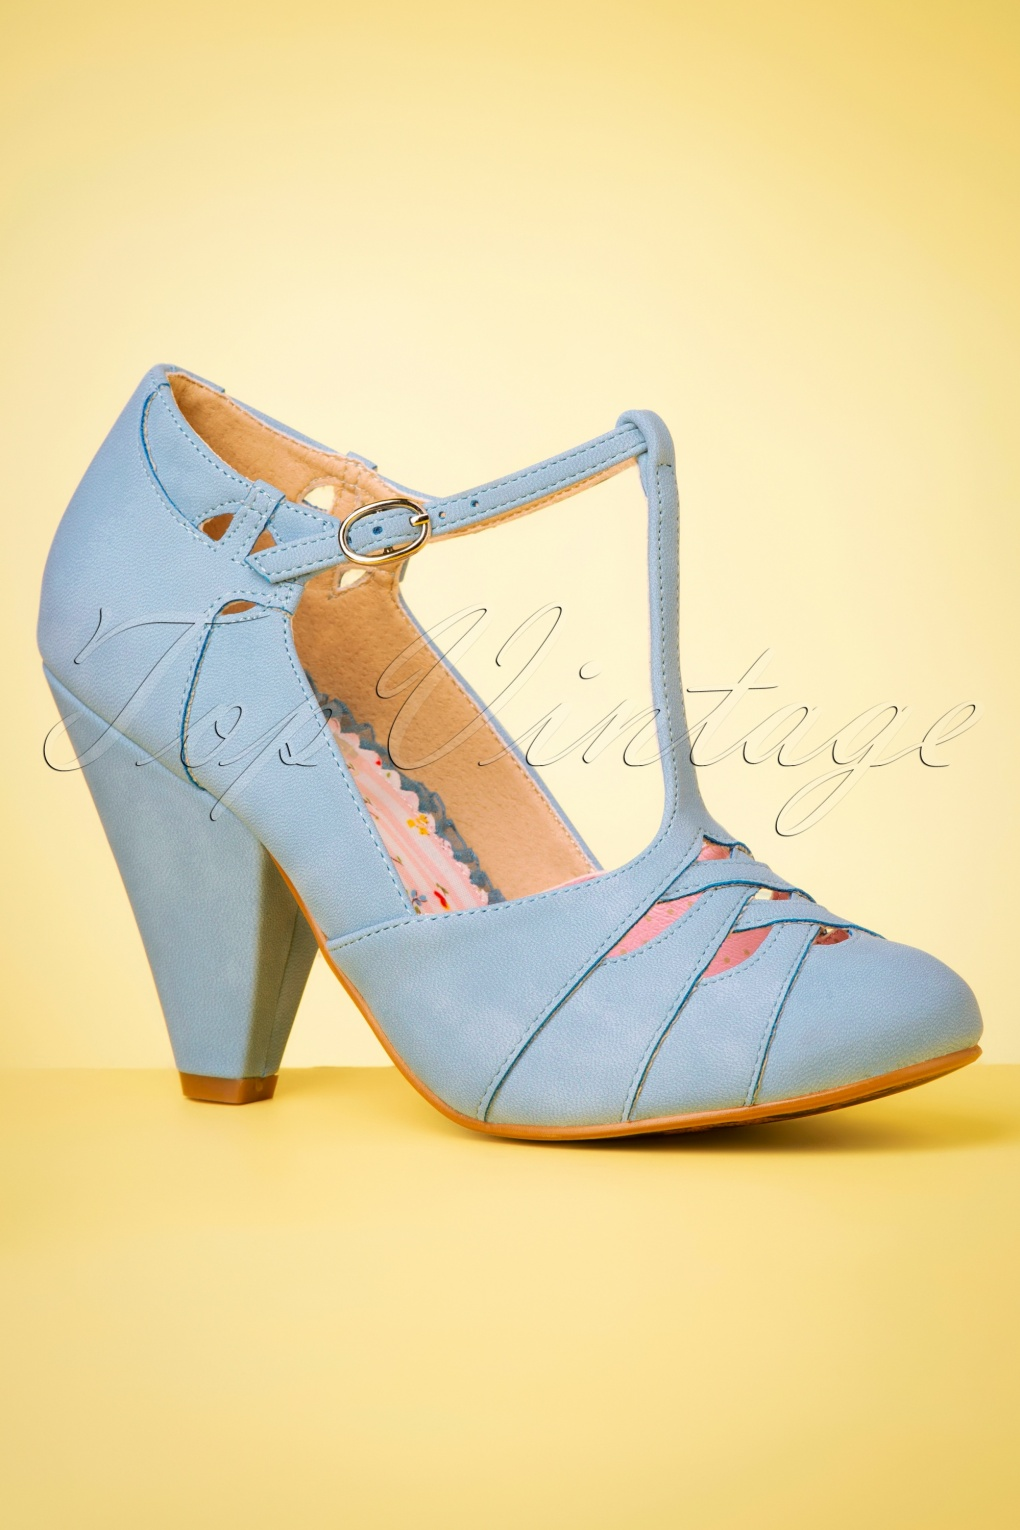 Pin Up Shoes- Heels, Pumps & Flats 50s Laura T-Strap Pumps in Baby Blue £65.07 AT vintagedancer.com